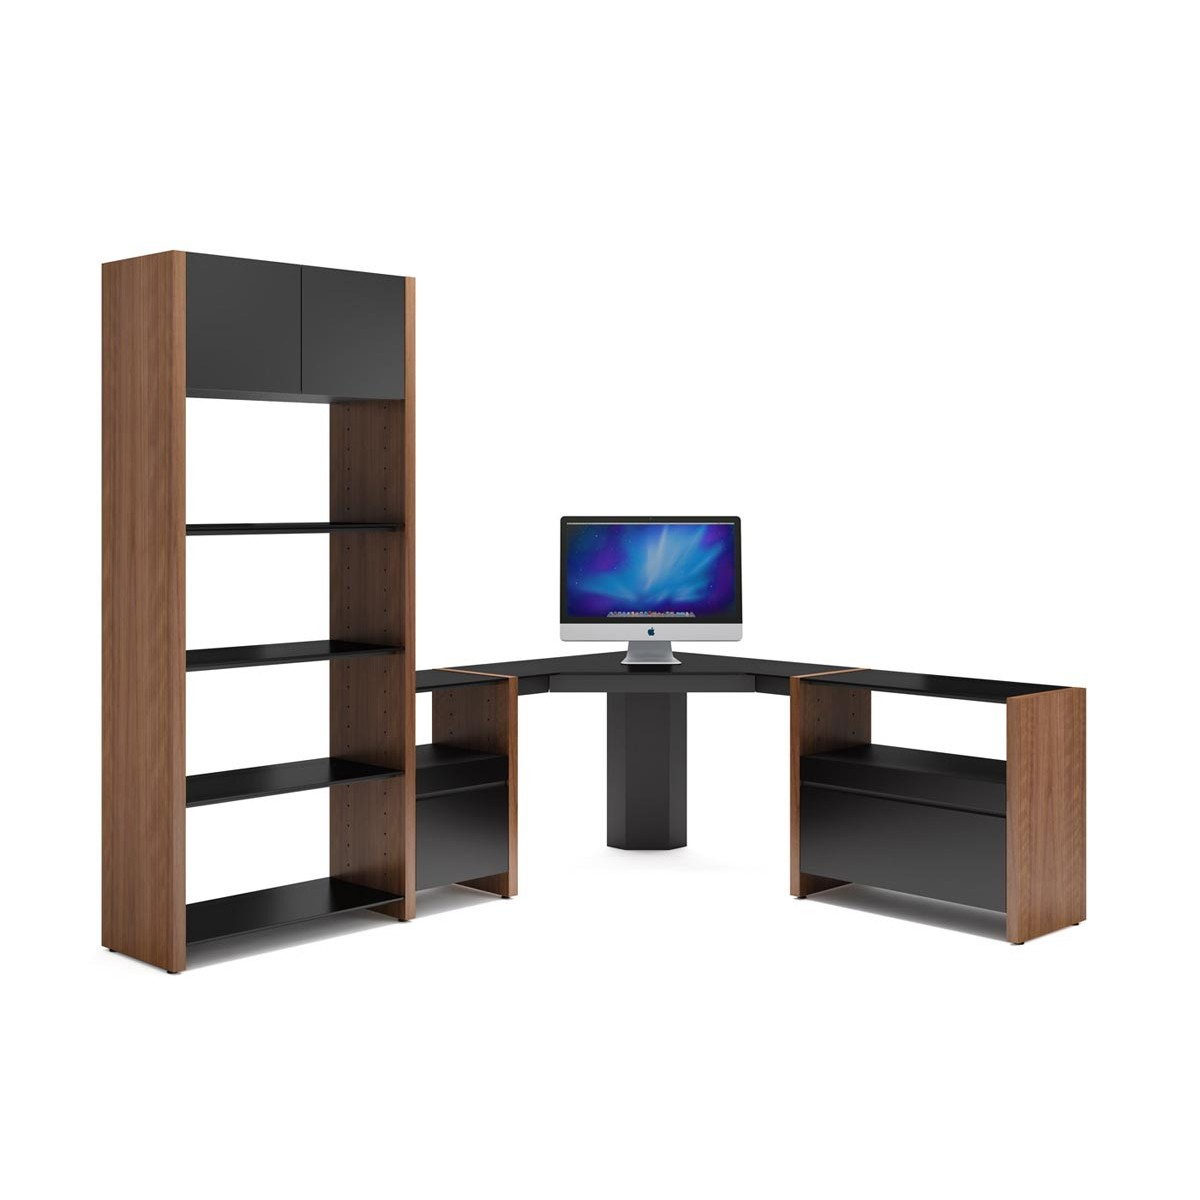 bdi semblance office 5464cs - Bdi Furniture